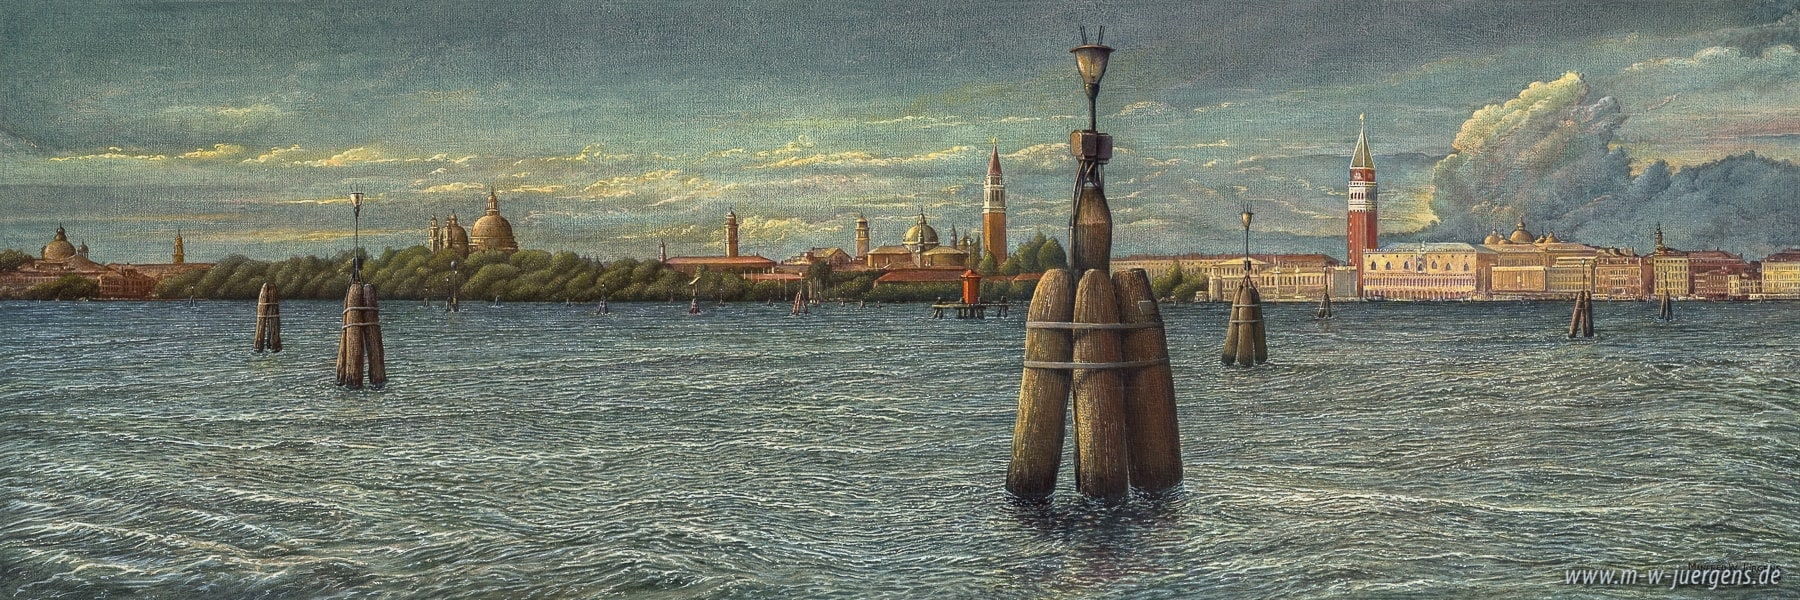 New Realism Art, Artists, Figurative Art, Figurative Paintings, Contemporary Fine Arts, Painters, Manfred W. Juergens Venice